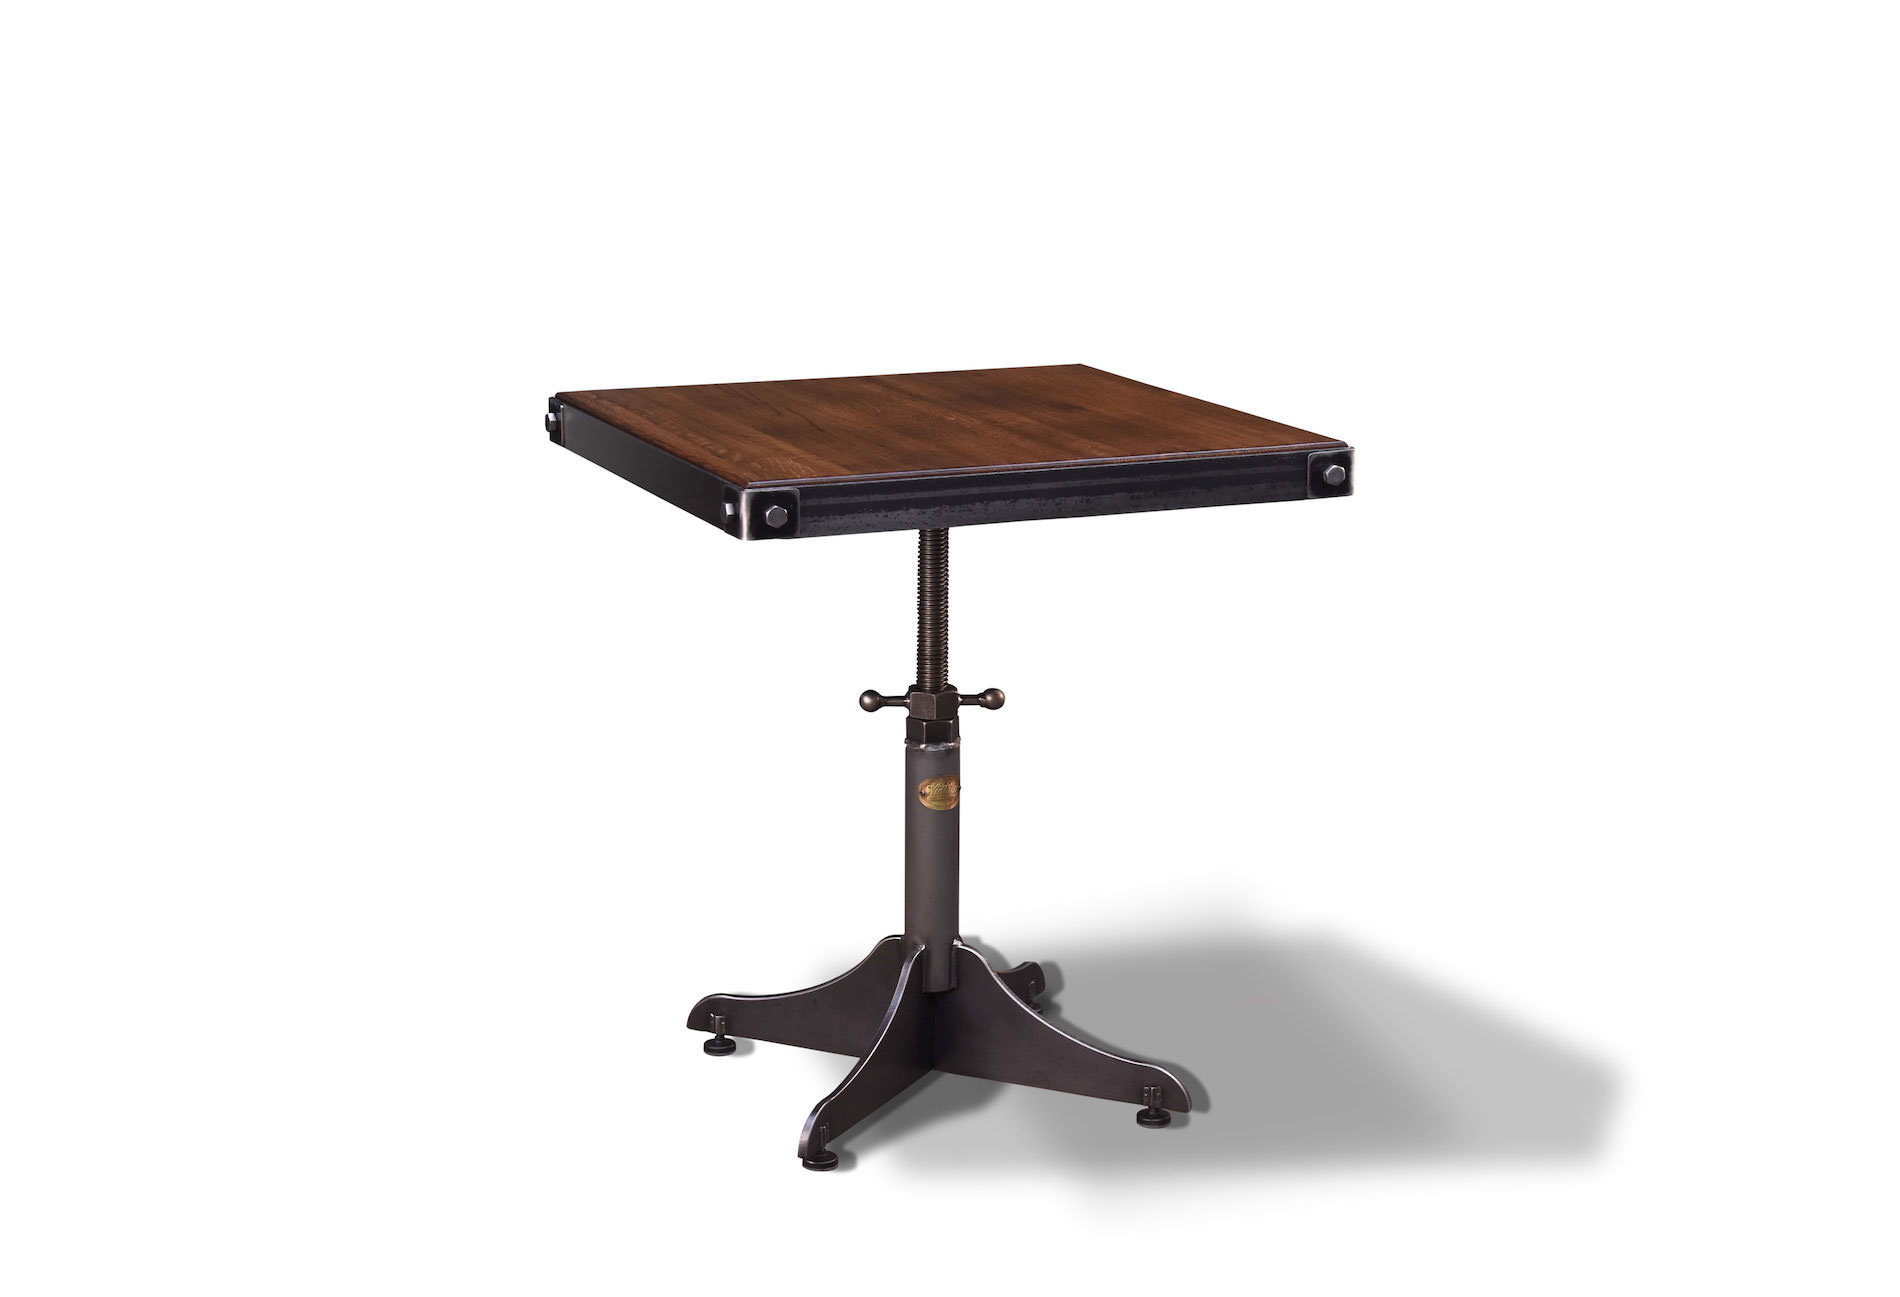 Standard Kitchen Table Top Height Whatever Table | Vintage Industrial Furniture